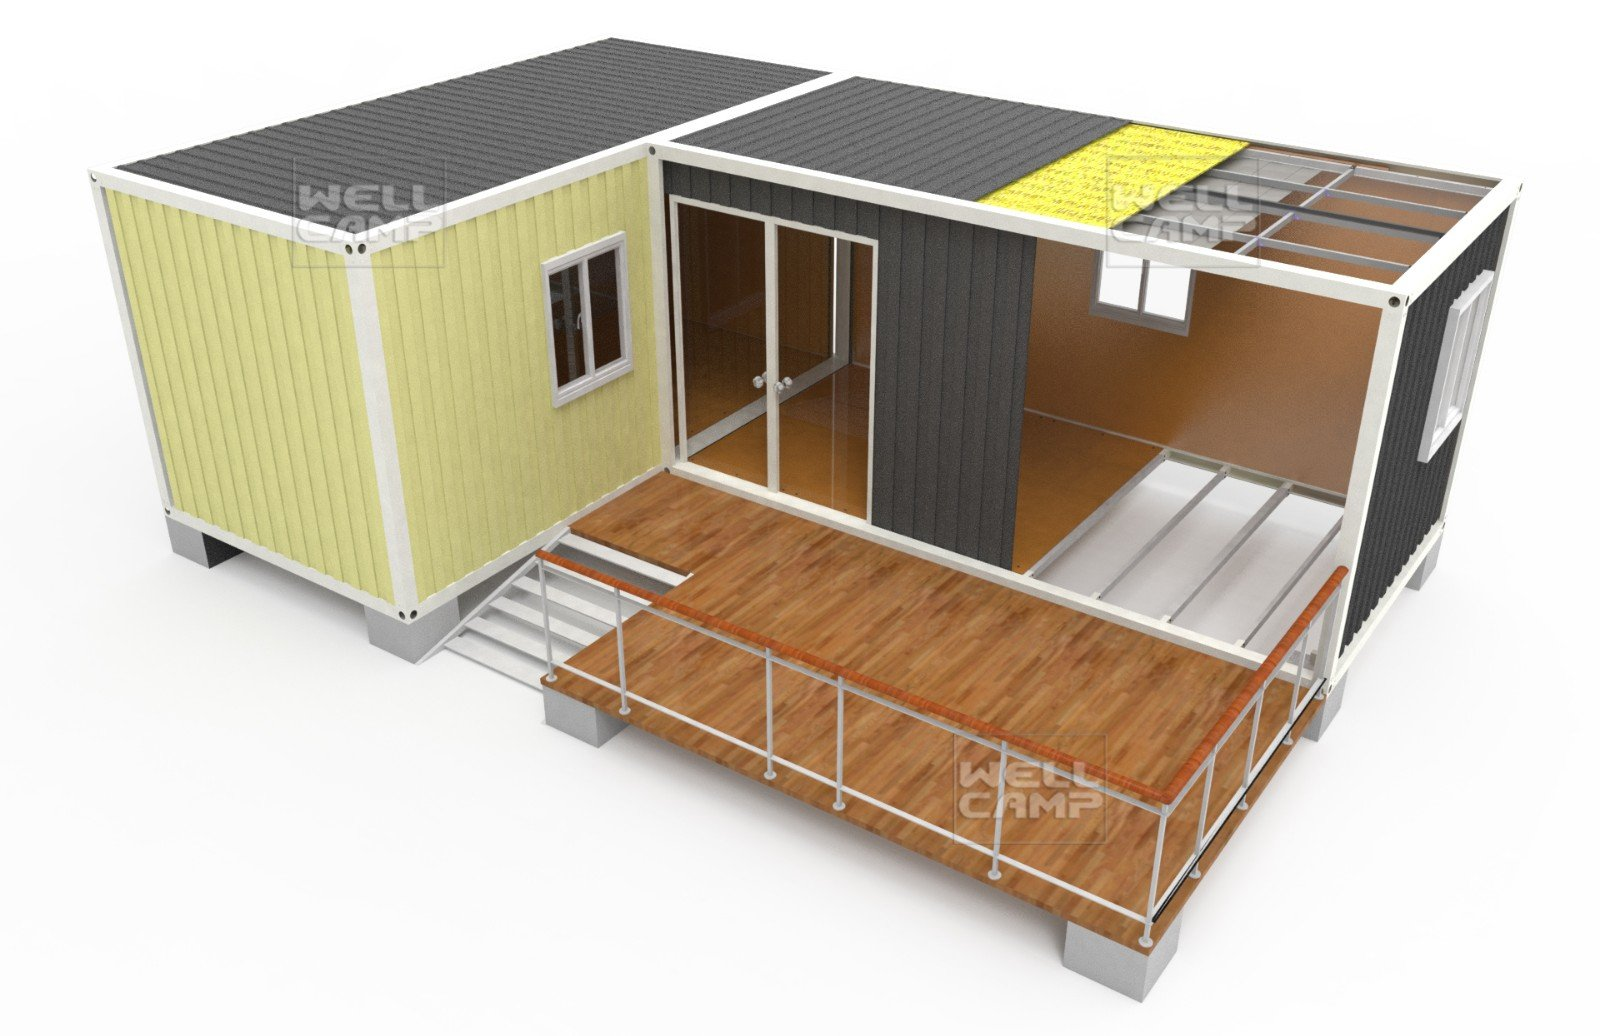 steel c1 luxury living container villa suppliers premade WELLCAMP, WELLCAMP prefab house, WELLCAMP container house